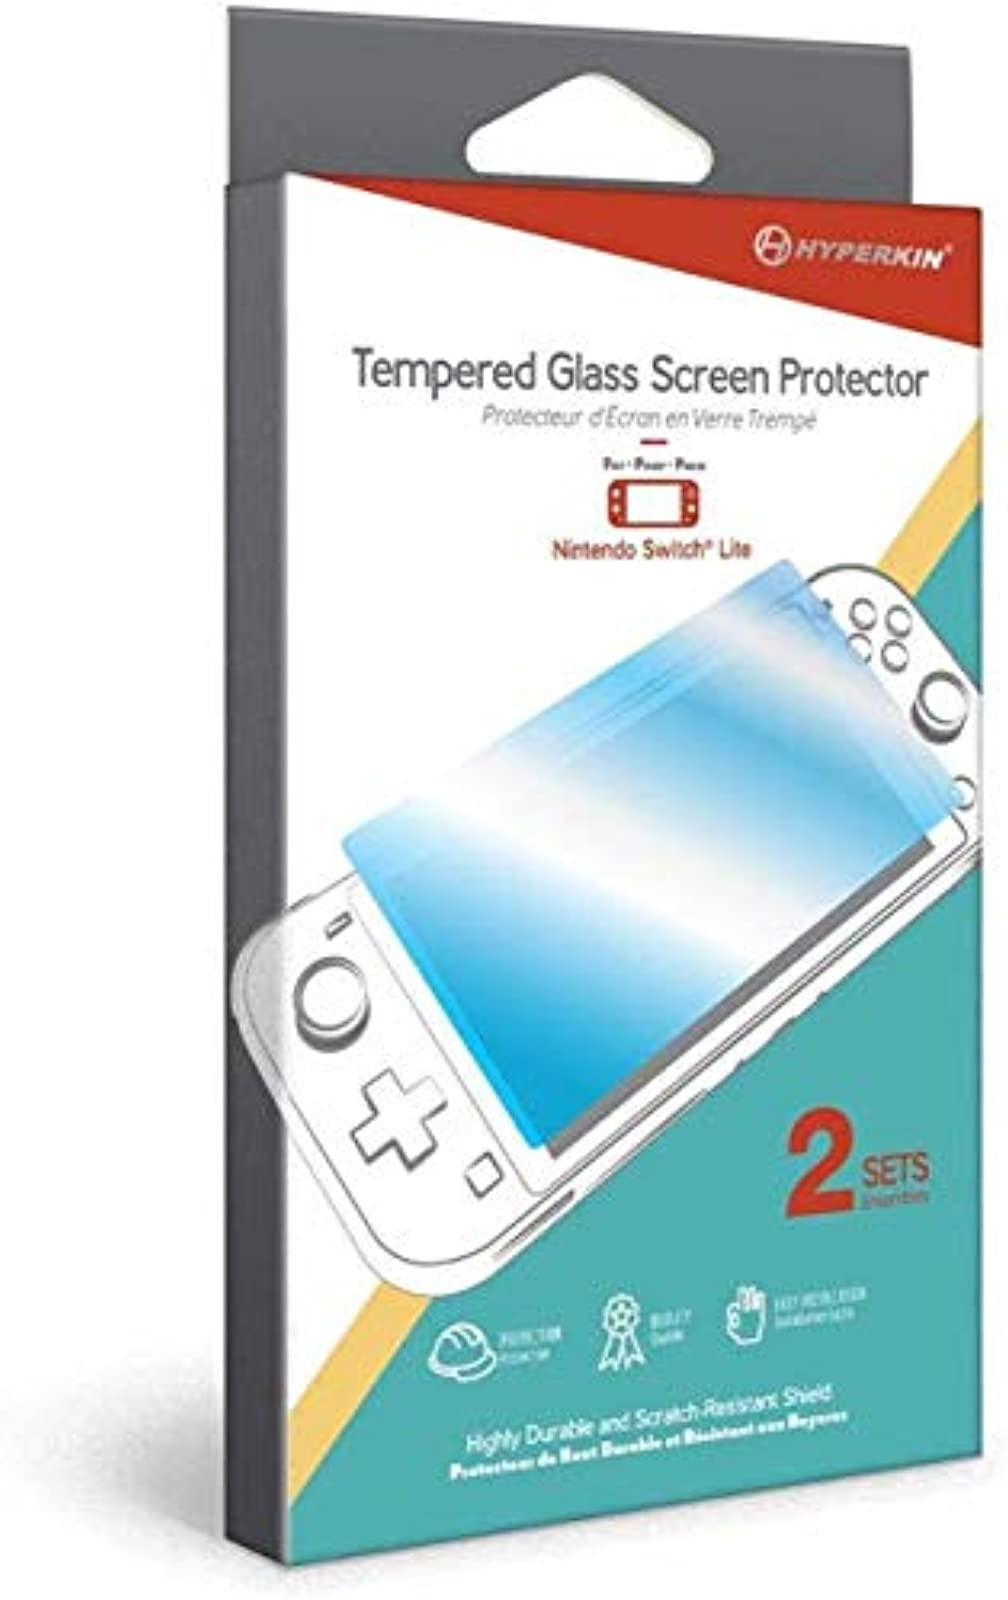 Hyperkin Tempered Glass Screen Protector For Nintendo Switch Lite 2-SETS